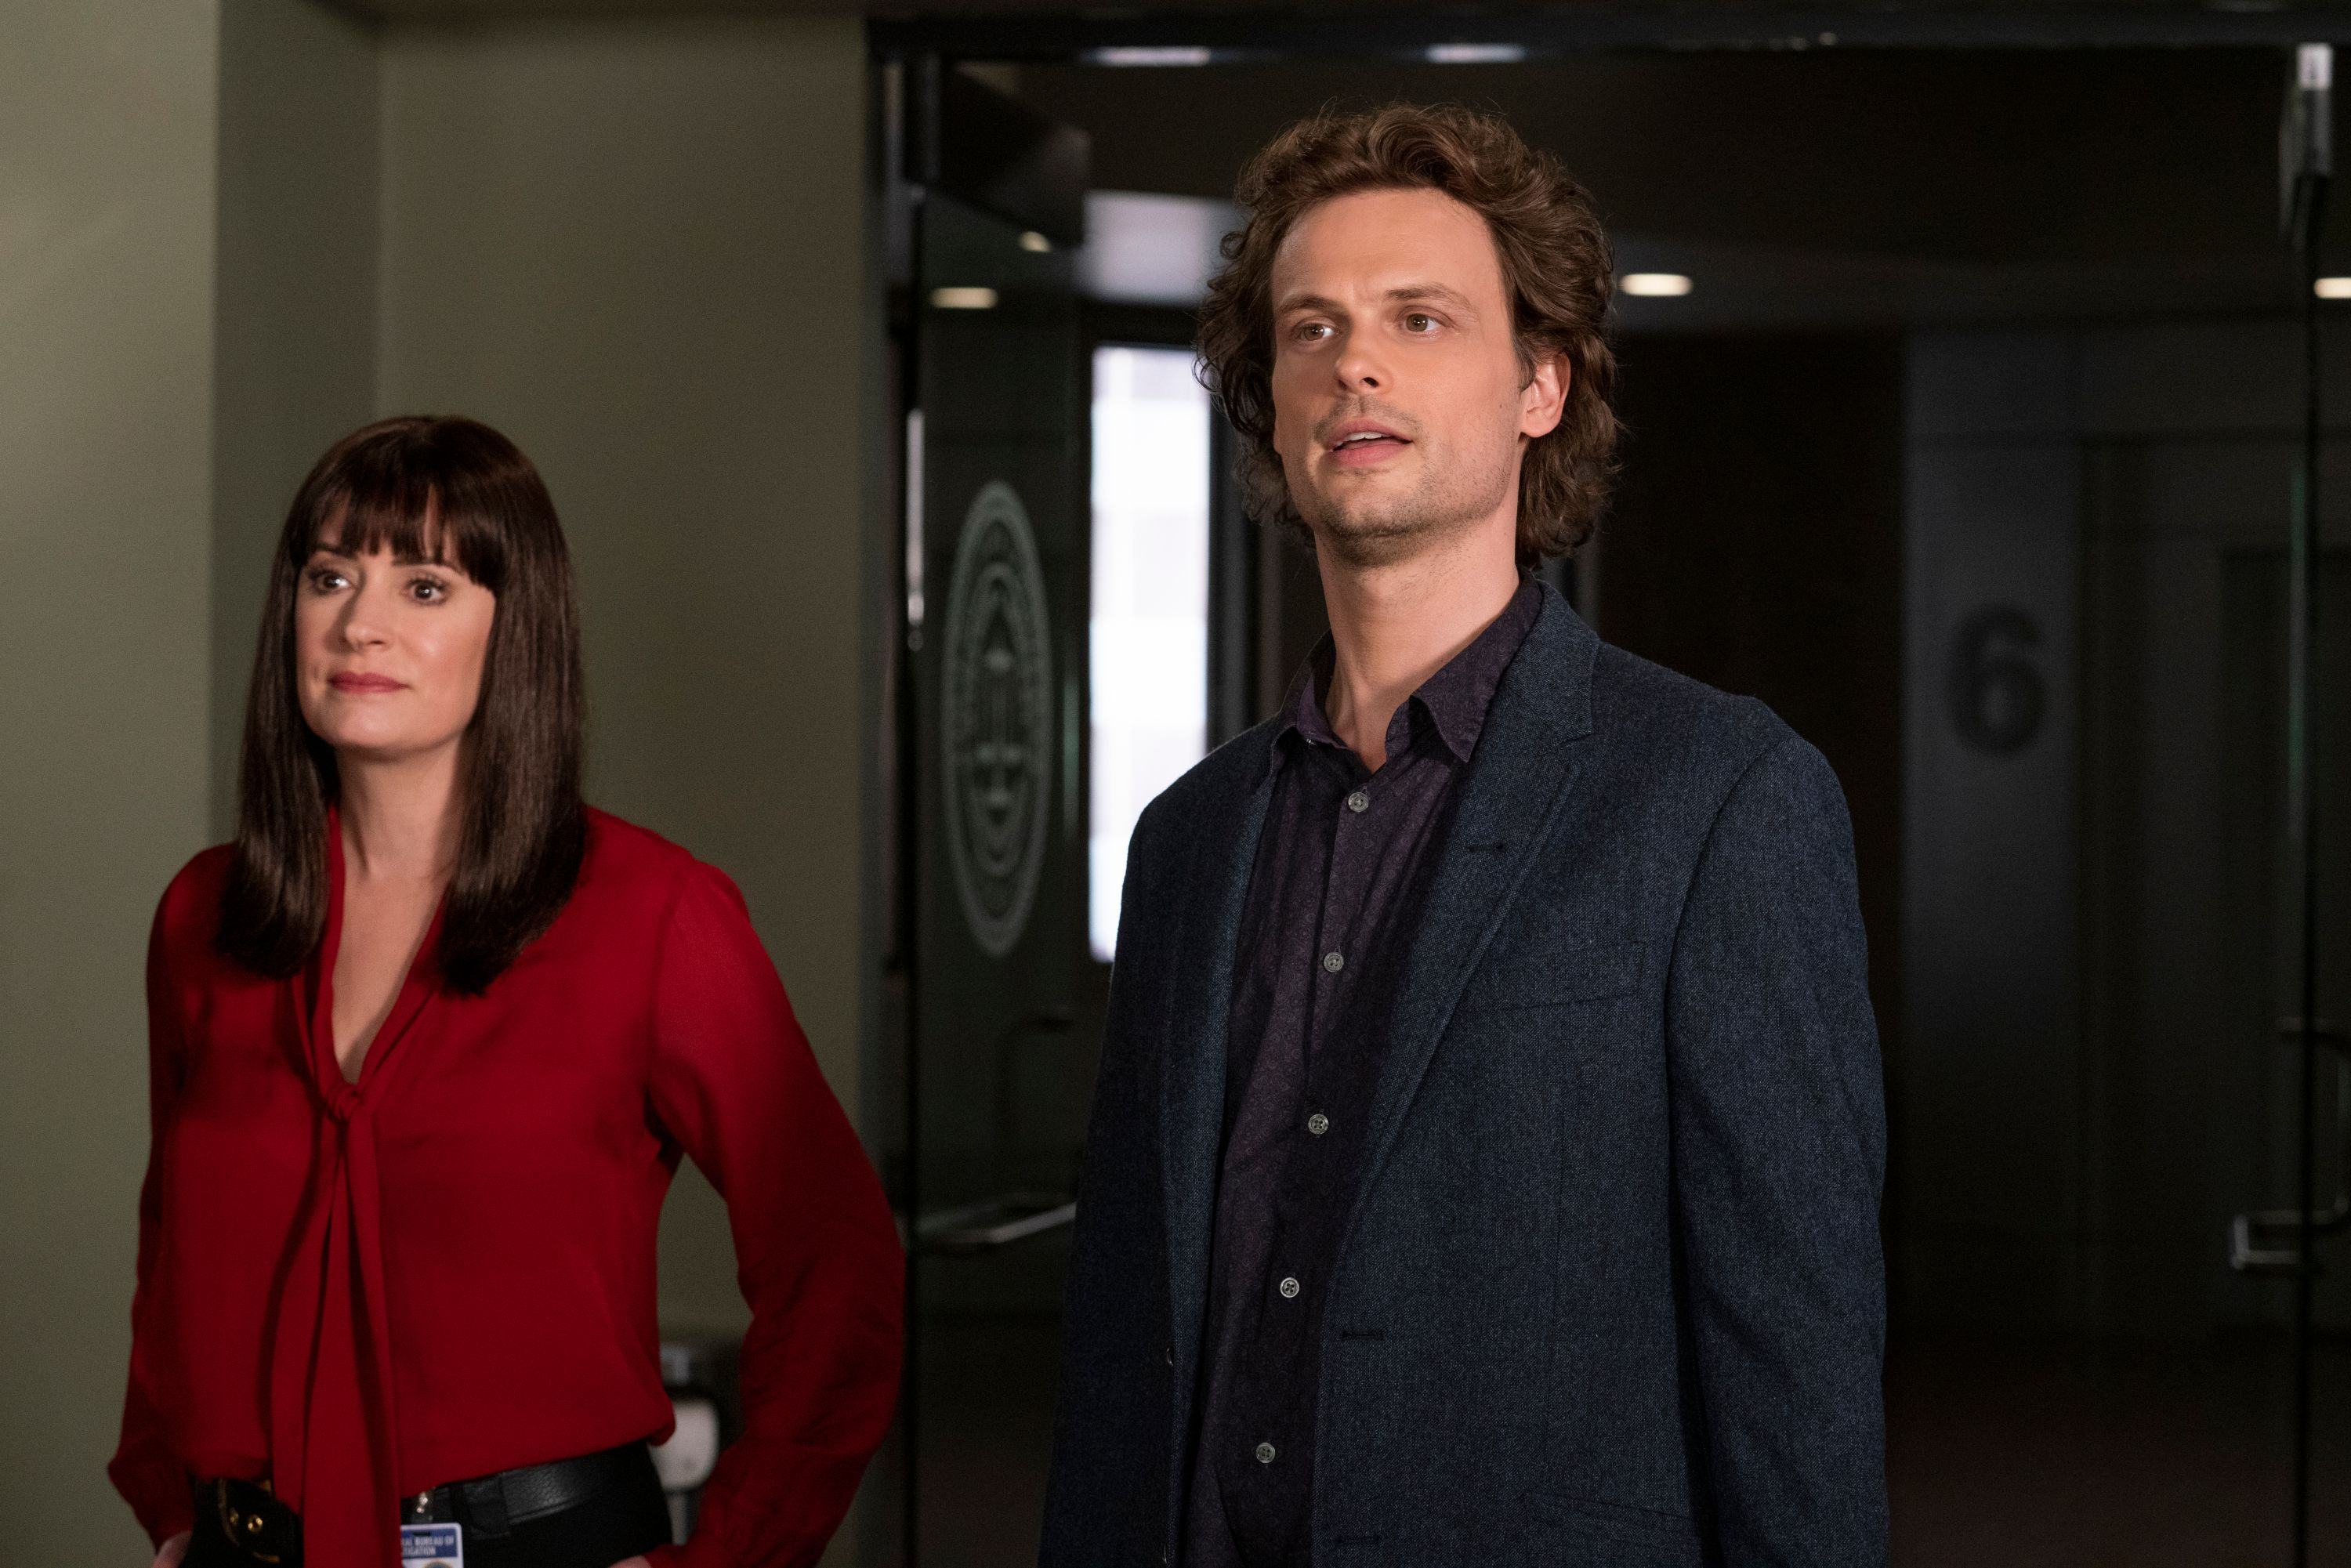 Paget Brewster as Emily Prentiss and Matthew Gray Gubler as Dr. Spencer Reid in Criminal Minds.